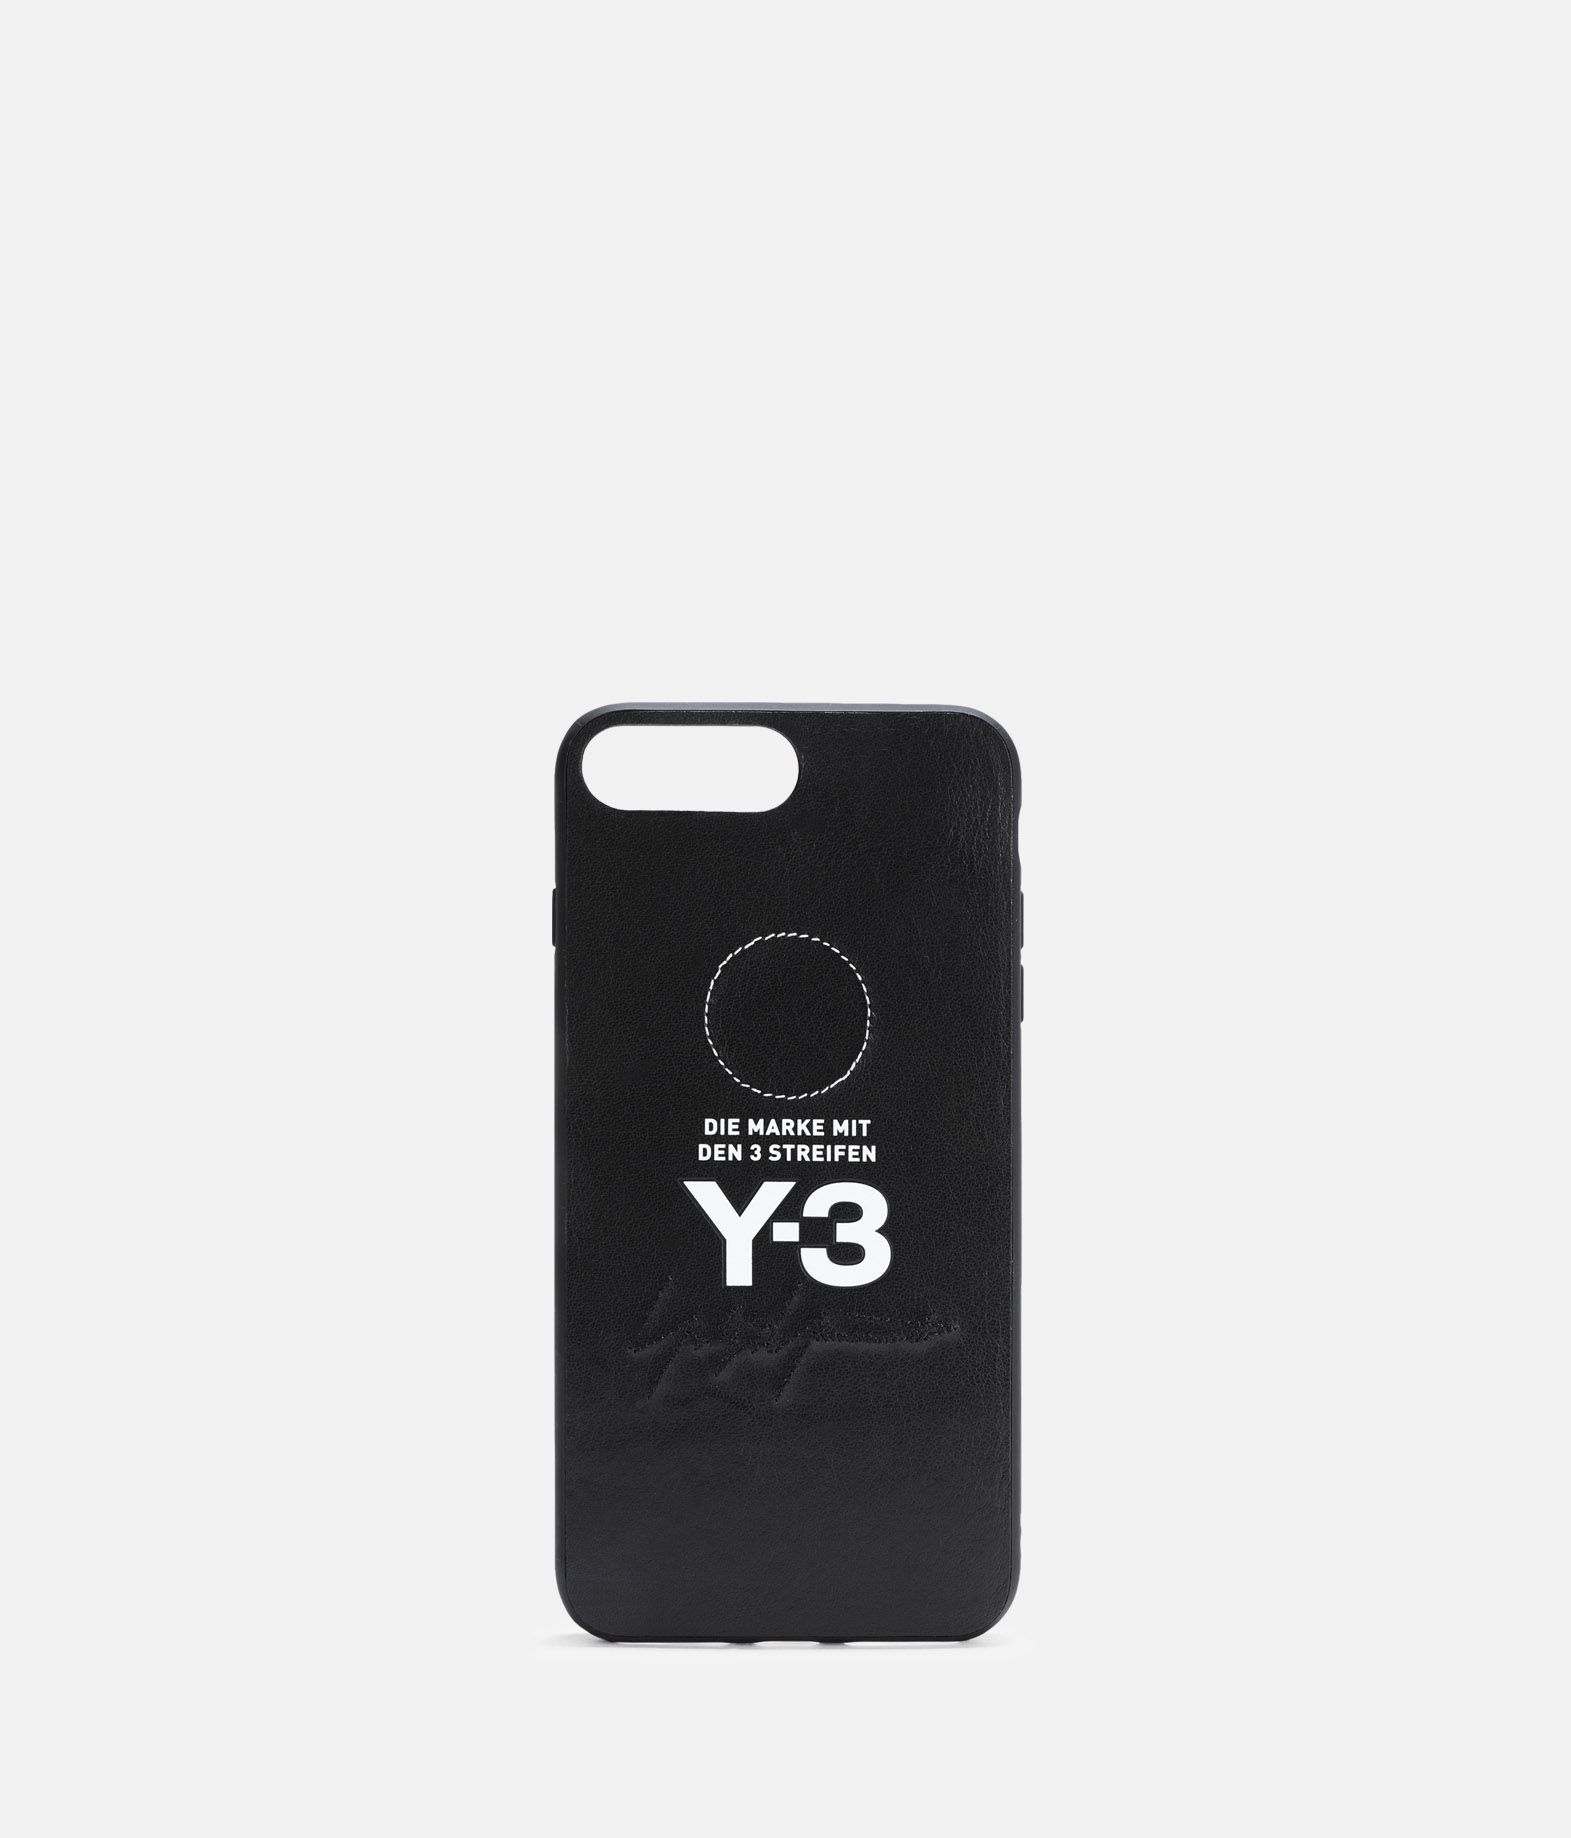 Y-3 Moulded Case Leather iPhone 6/6S/7/8+  Phone case E f